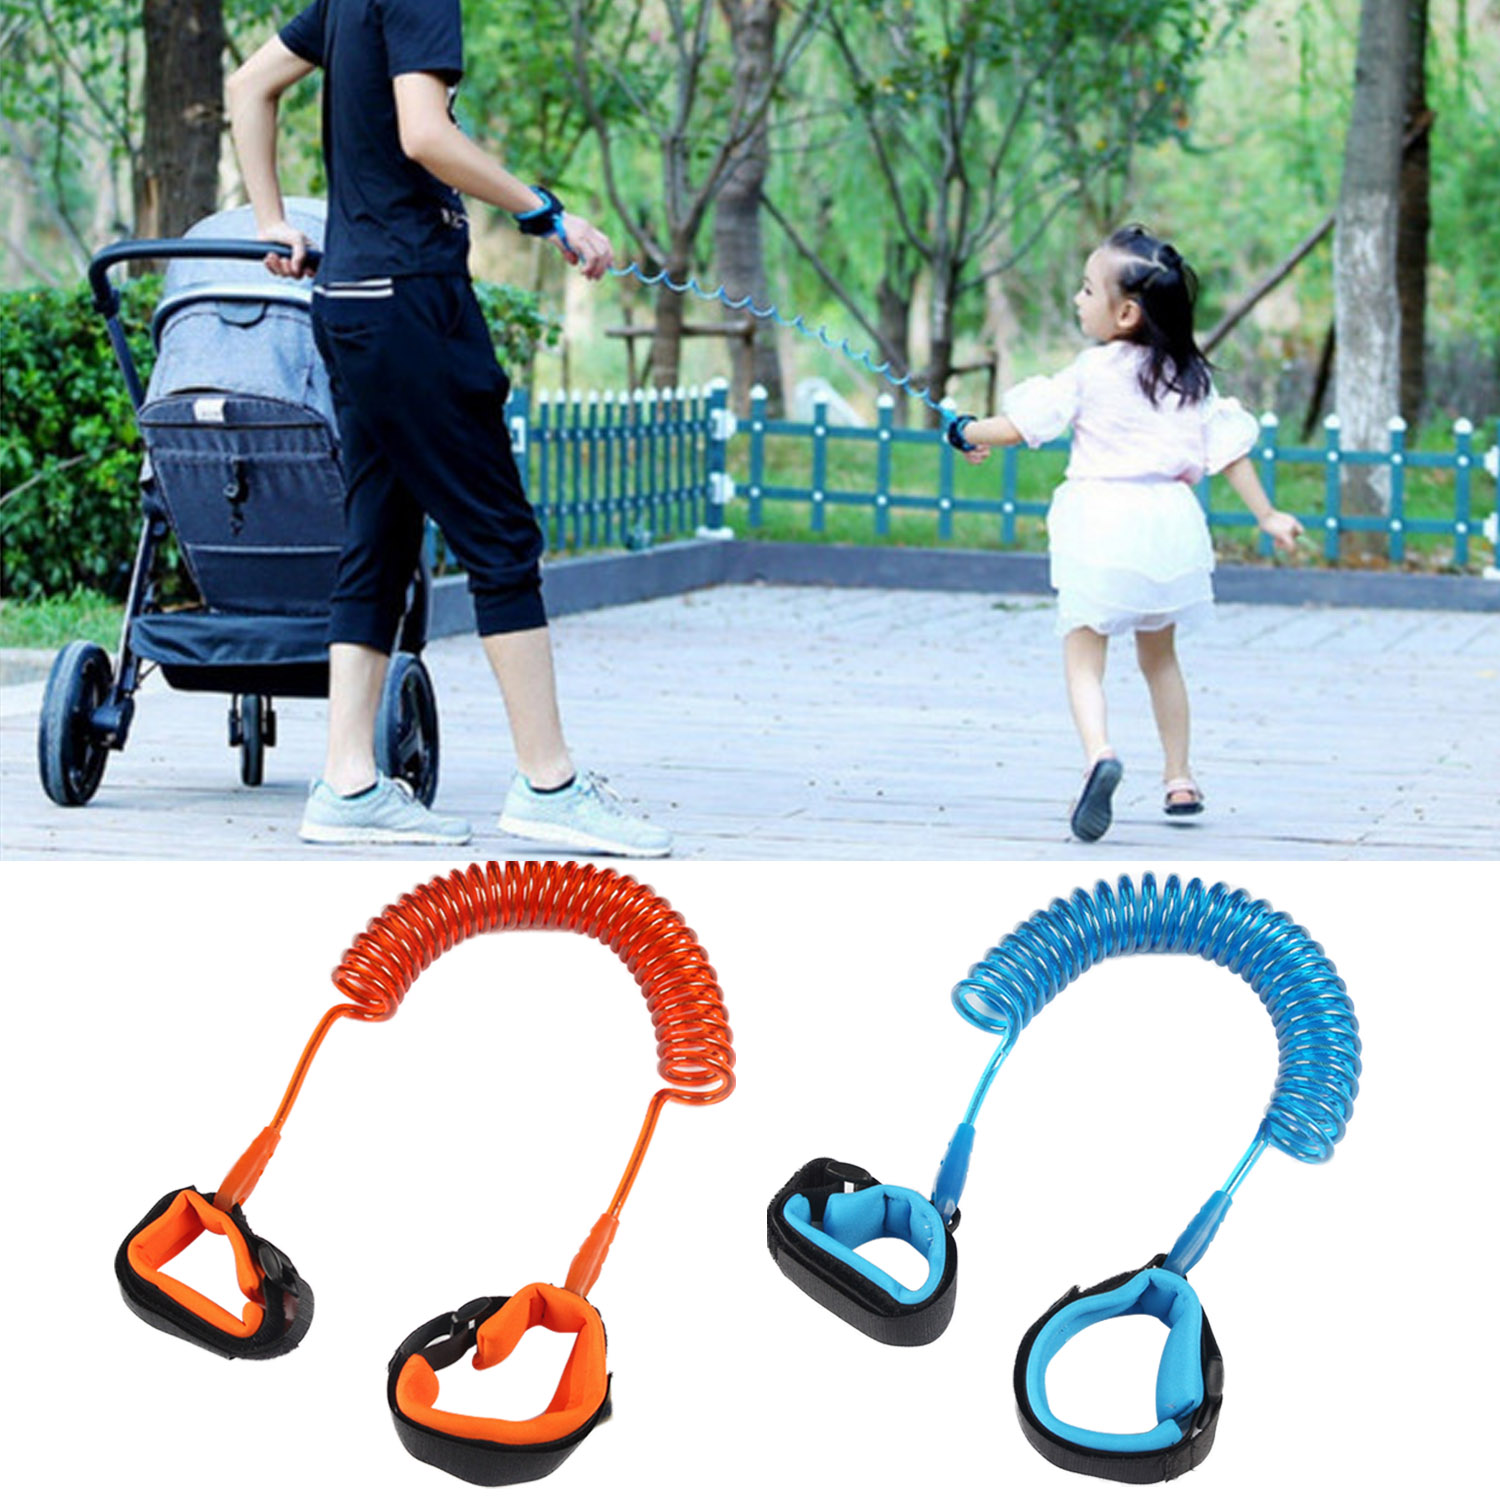 2PCS 1.5m Child Safety Anti-lost Wrist Link Strap Rope Kids Leash Safety Harness Outdoor Walking Hand Belt Anti-lost Wristbands